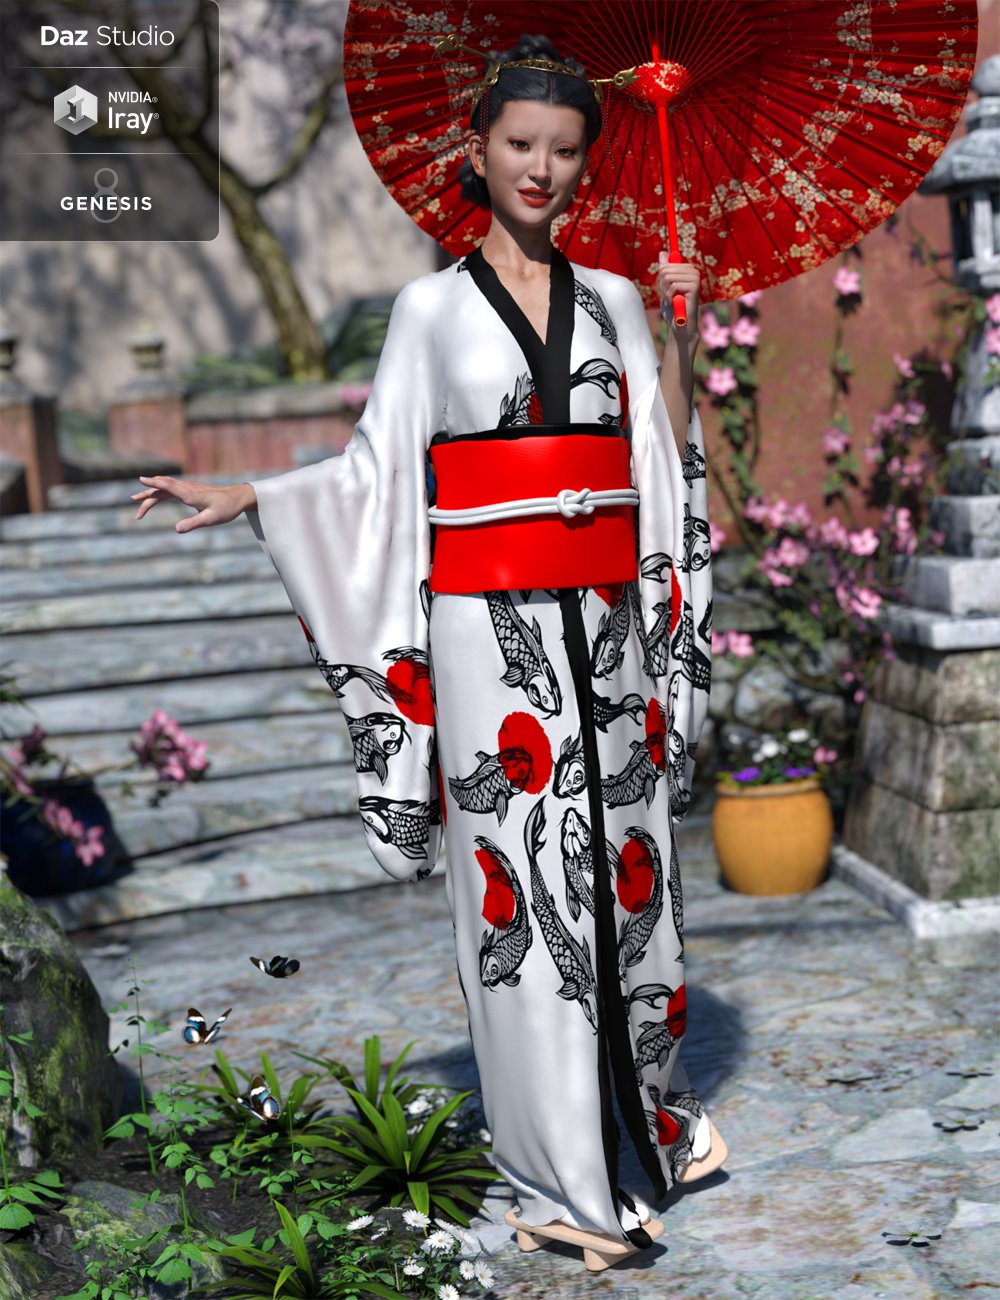 dForce Kimono Outfit for Genesis 8 Female(s) by: Lyrra MadrilMoonscape GraphicsSade, 3D Models by Daz 3D